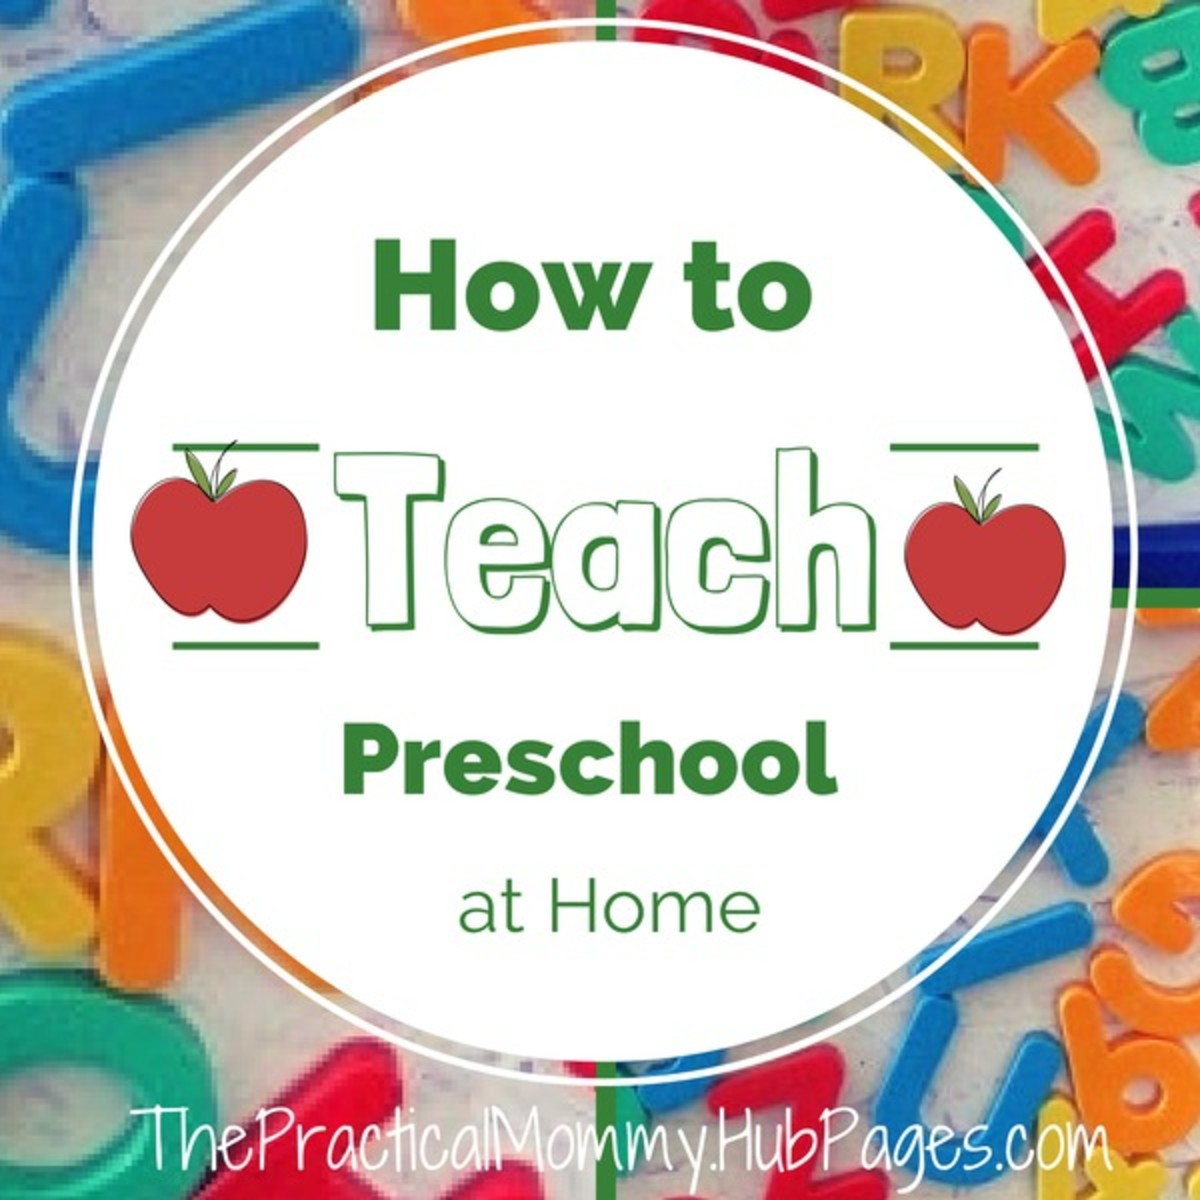 How to Teach Preschool at Home